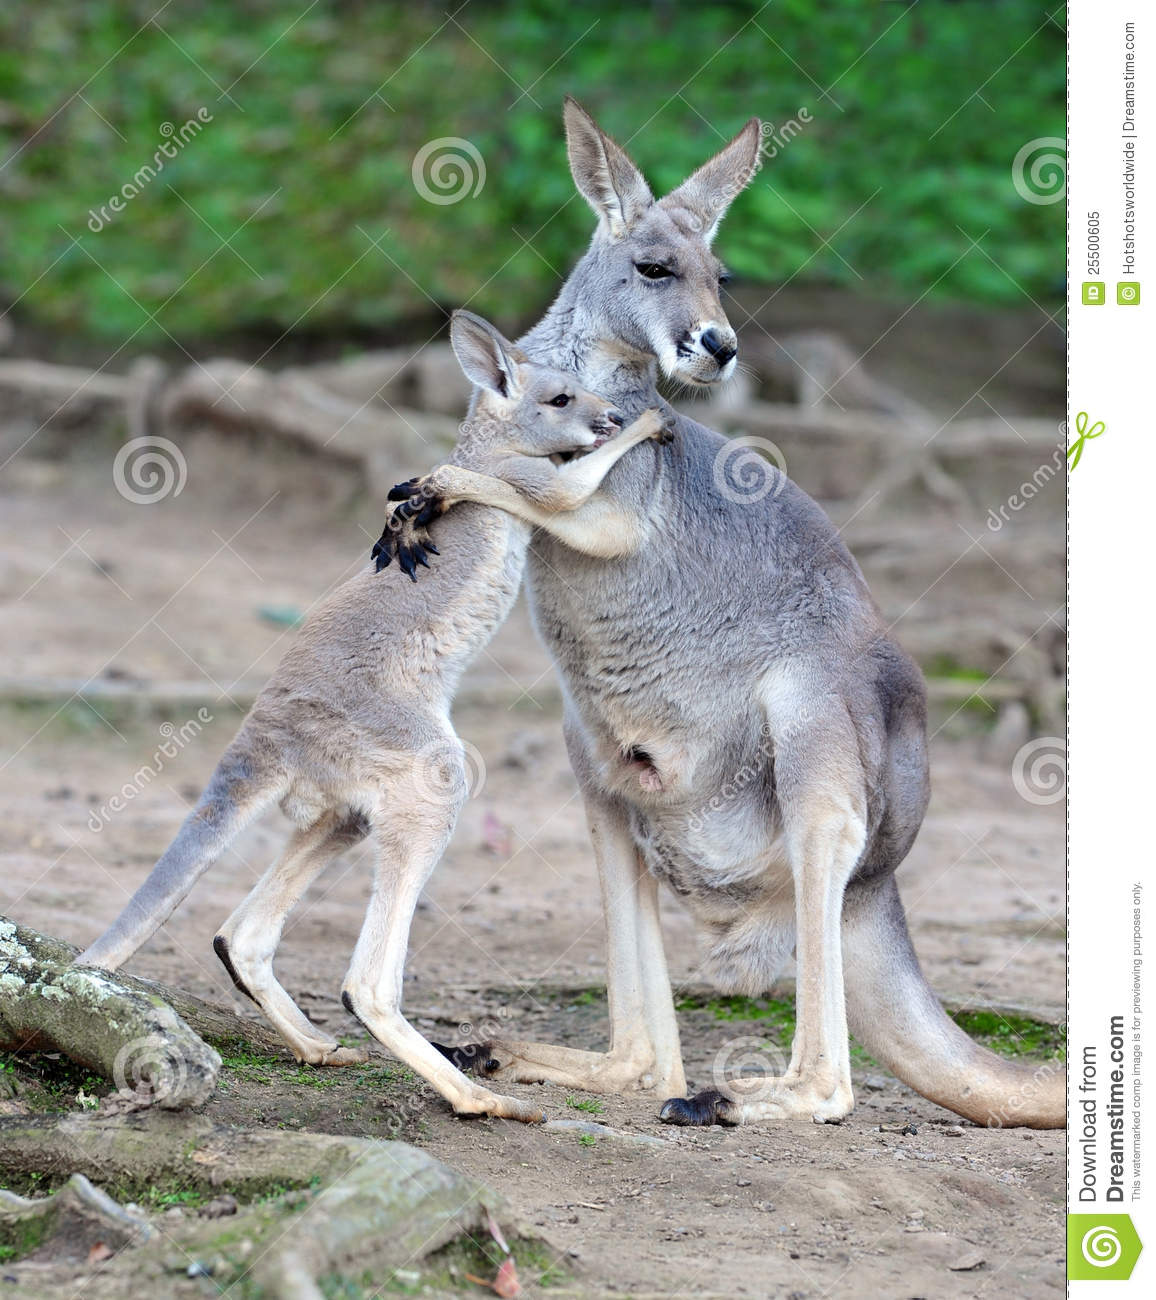 Royalty Free Stock Photo: Australian grey kangaroo embraces baby or ...